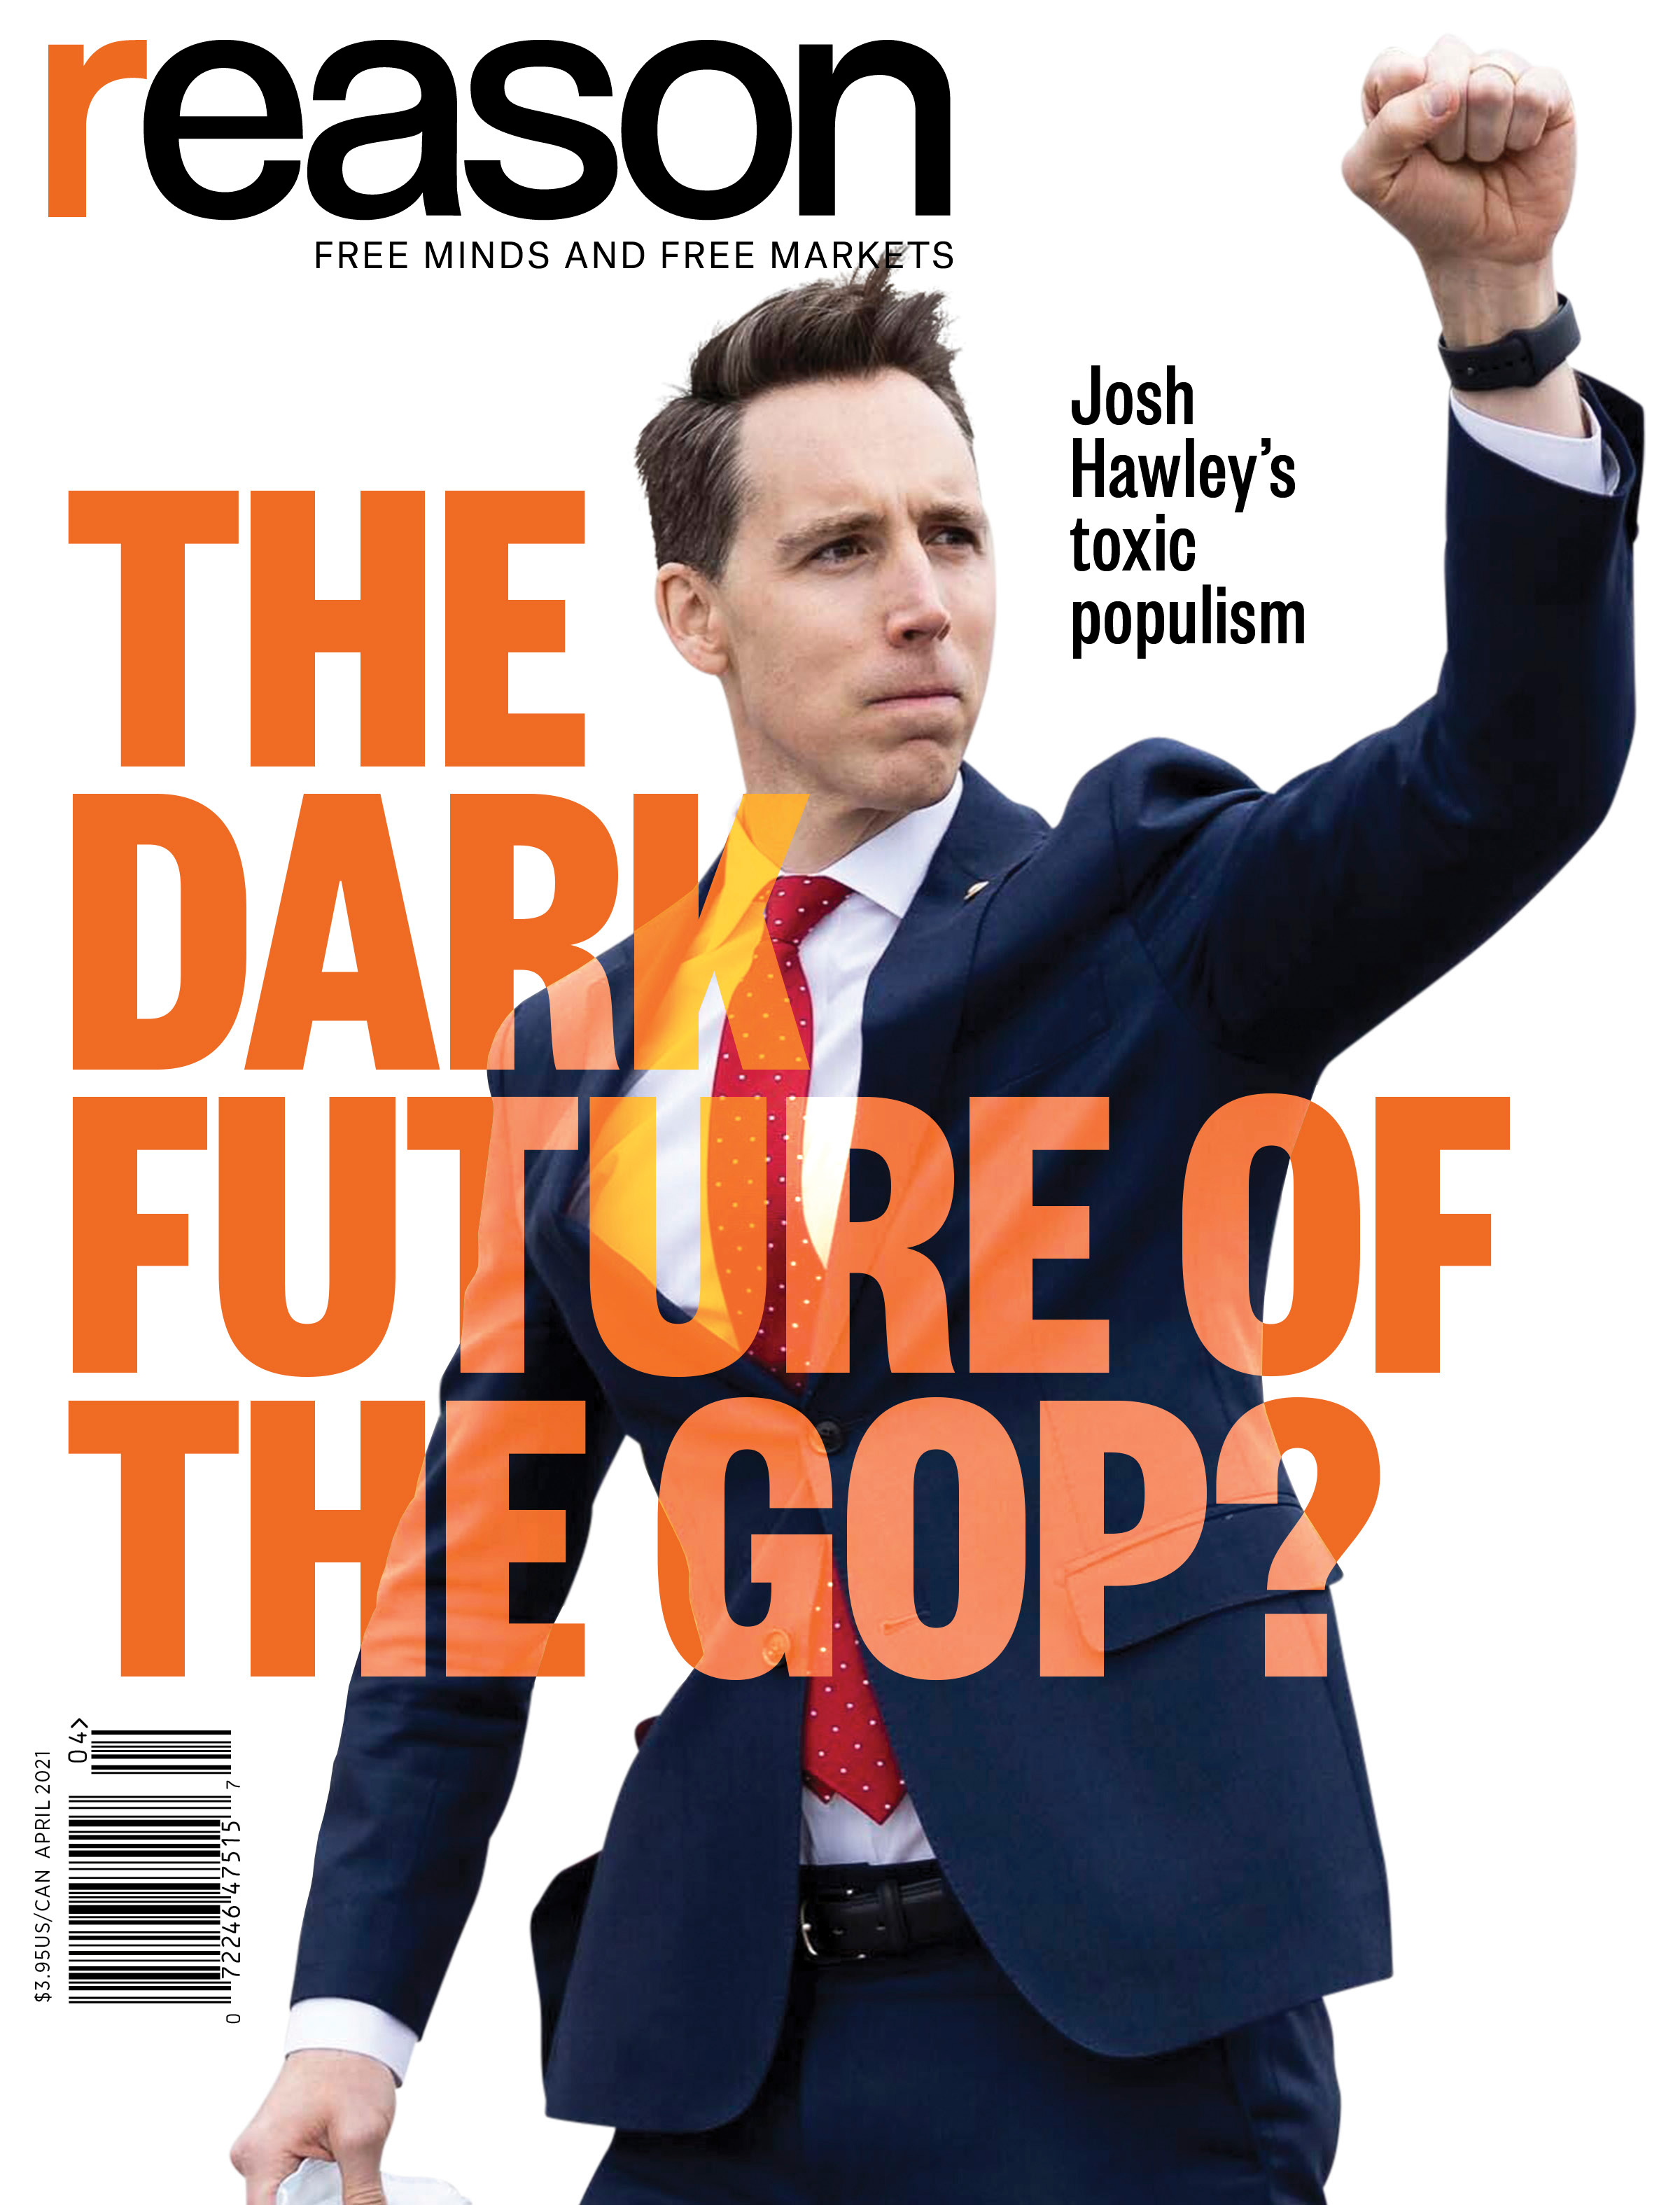 Reason Magazine, April 2021 cover image